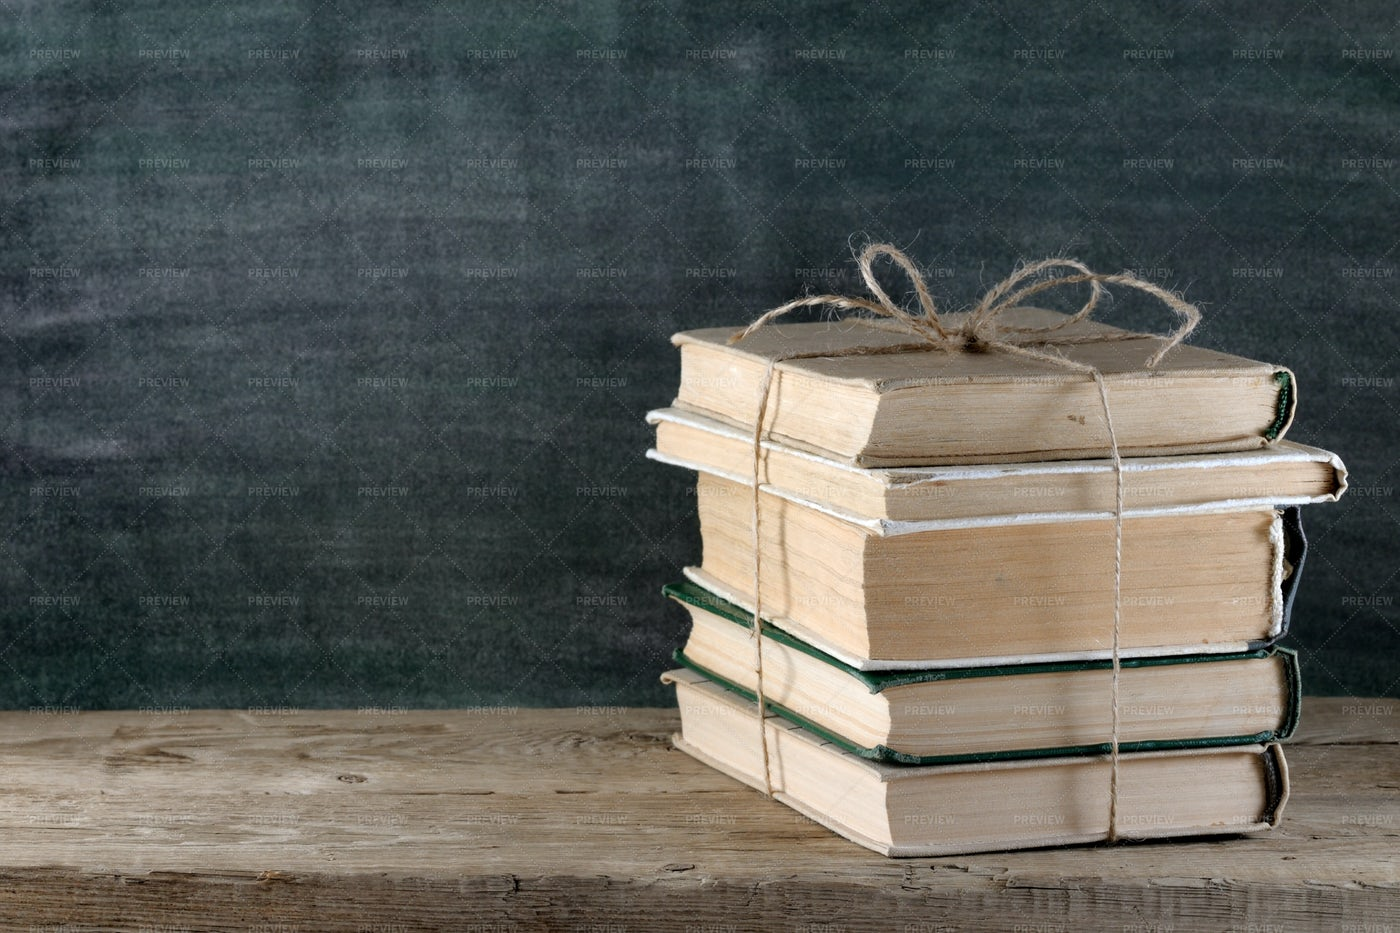 Old Books On Wooden Table: Stock Photos